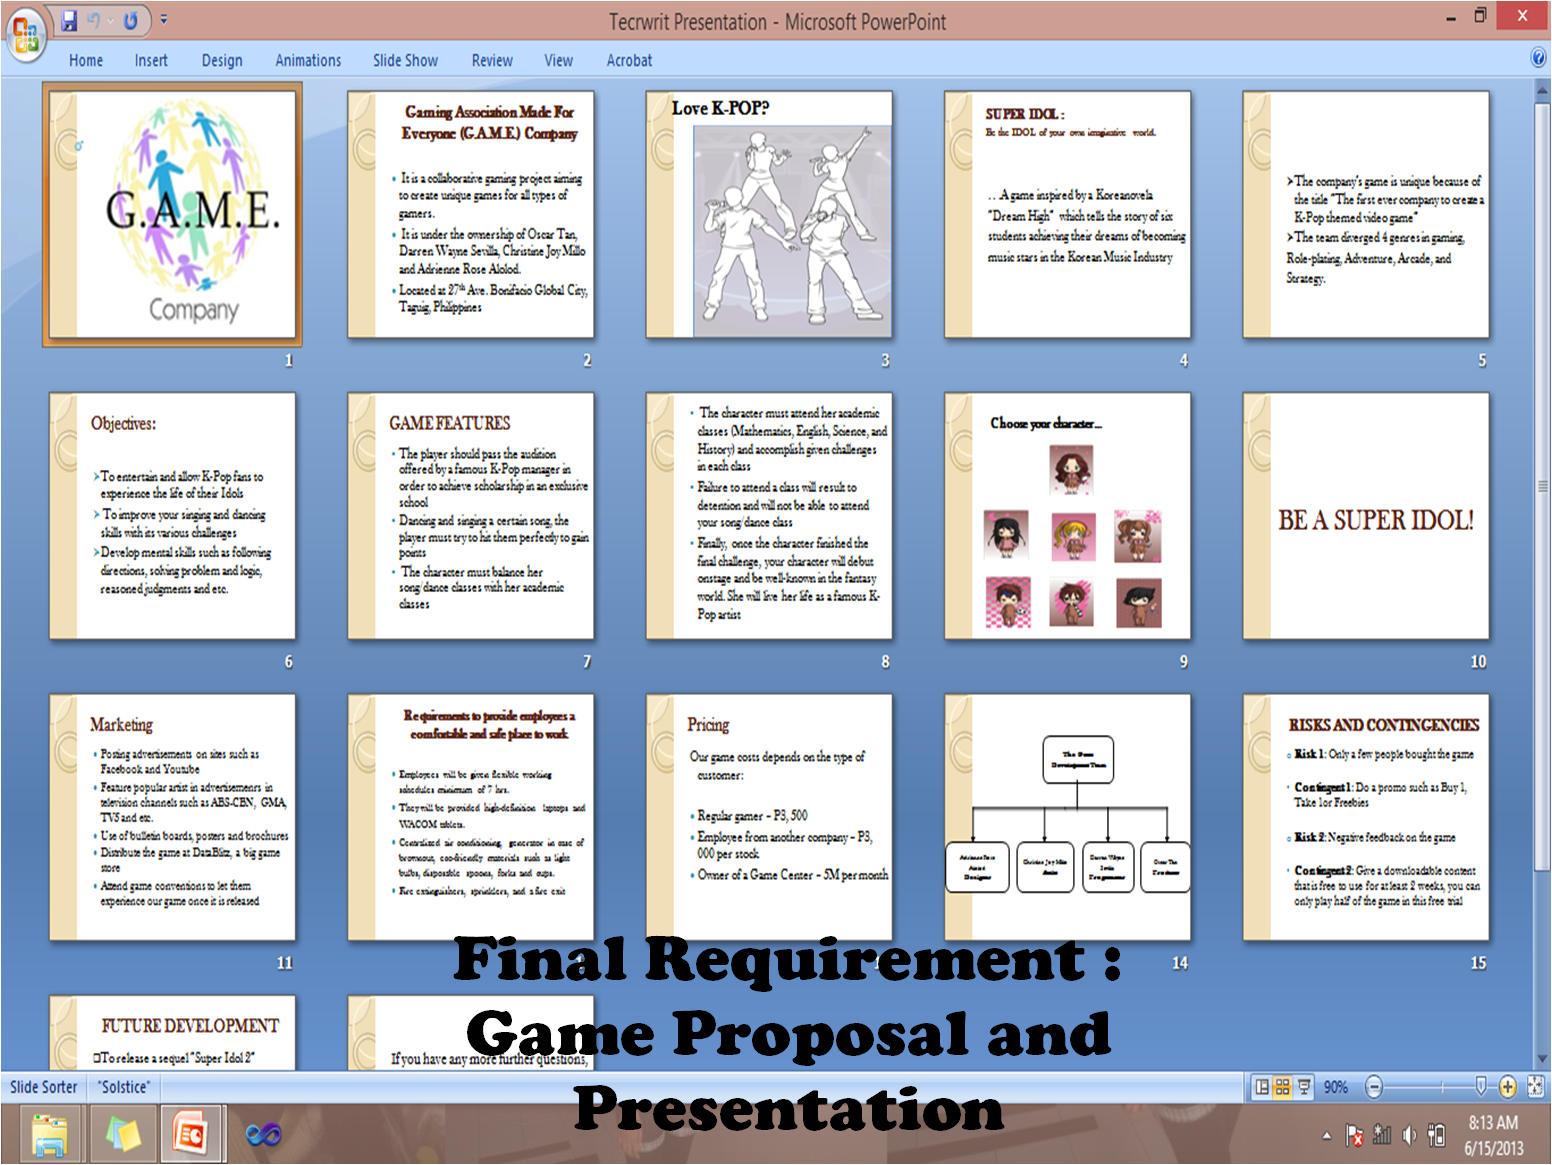 Game Design what subjects are given in college